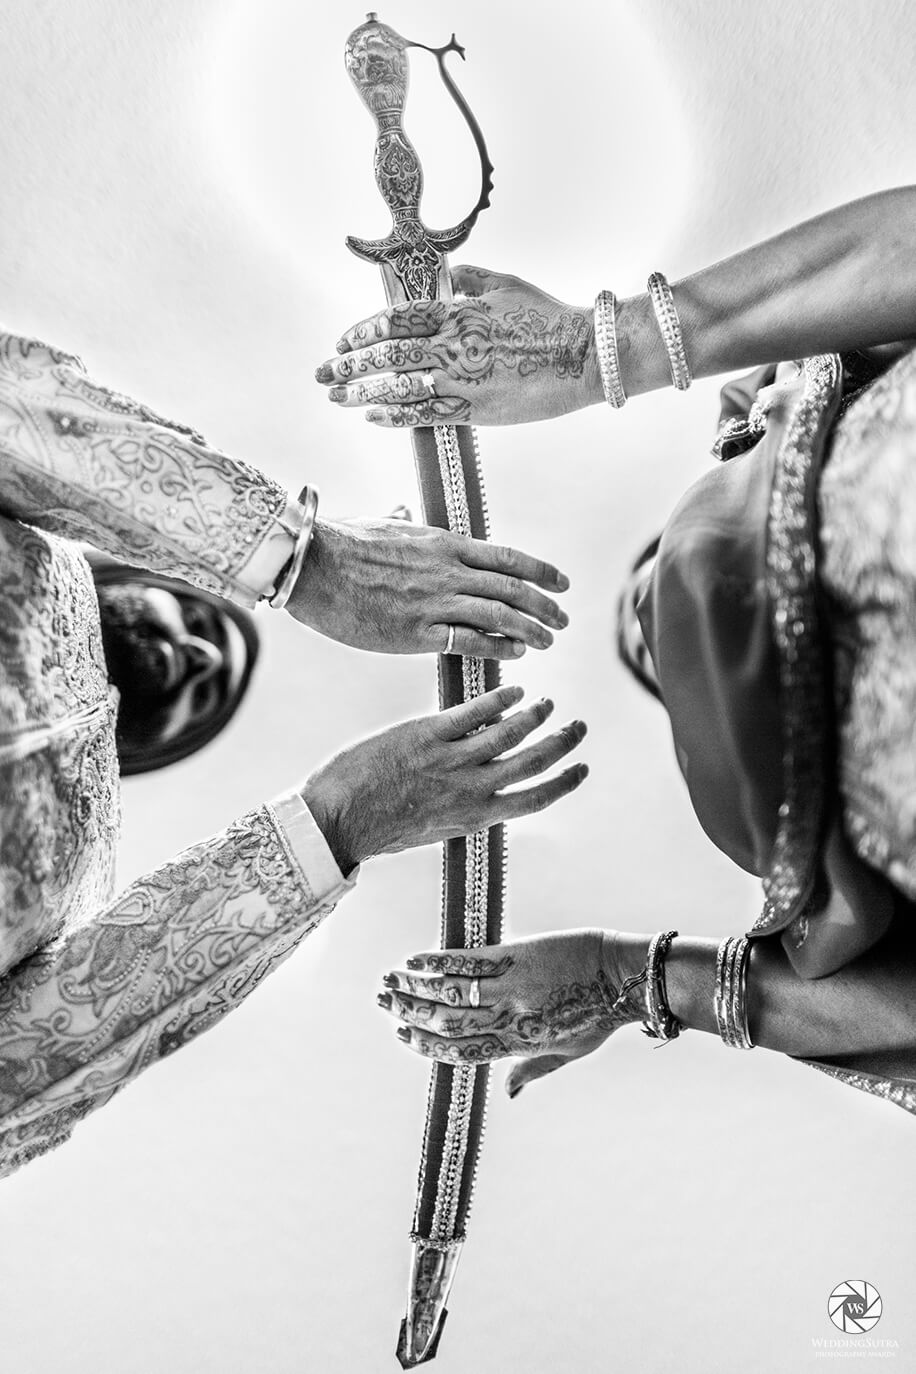 Wedding Details by Going Bananas Photography - WeddingSutra Photography Awards 2018